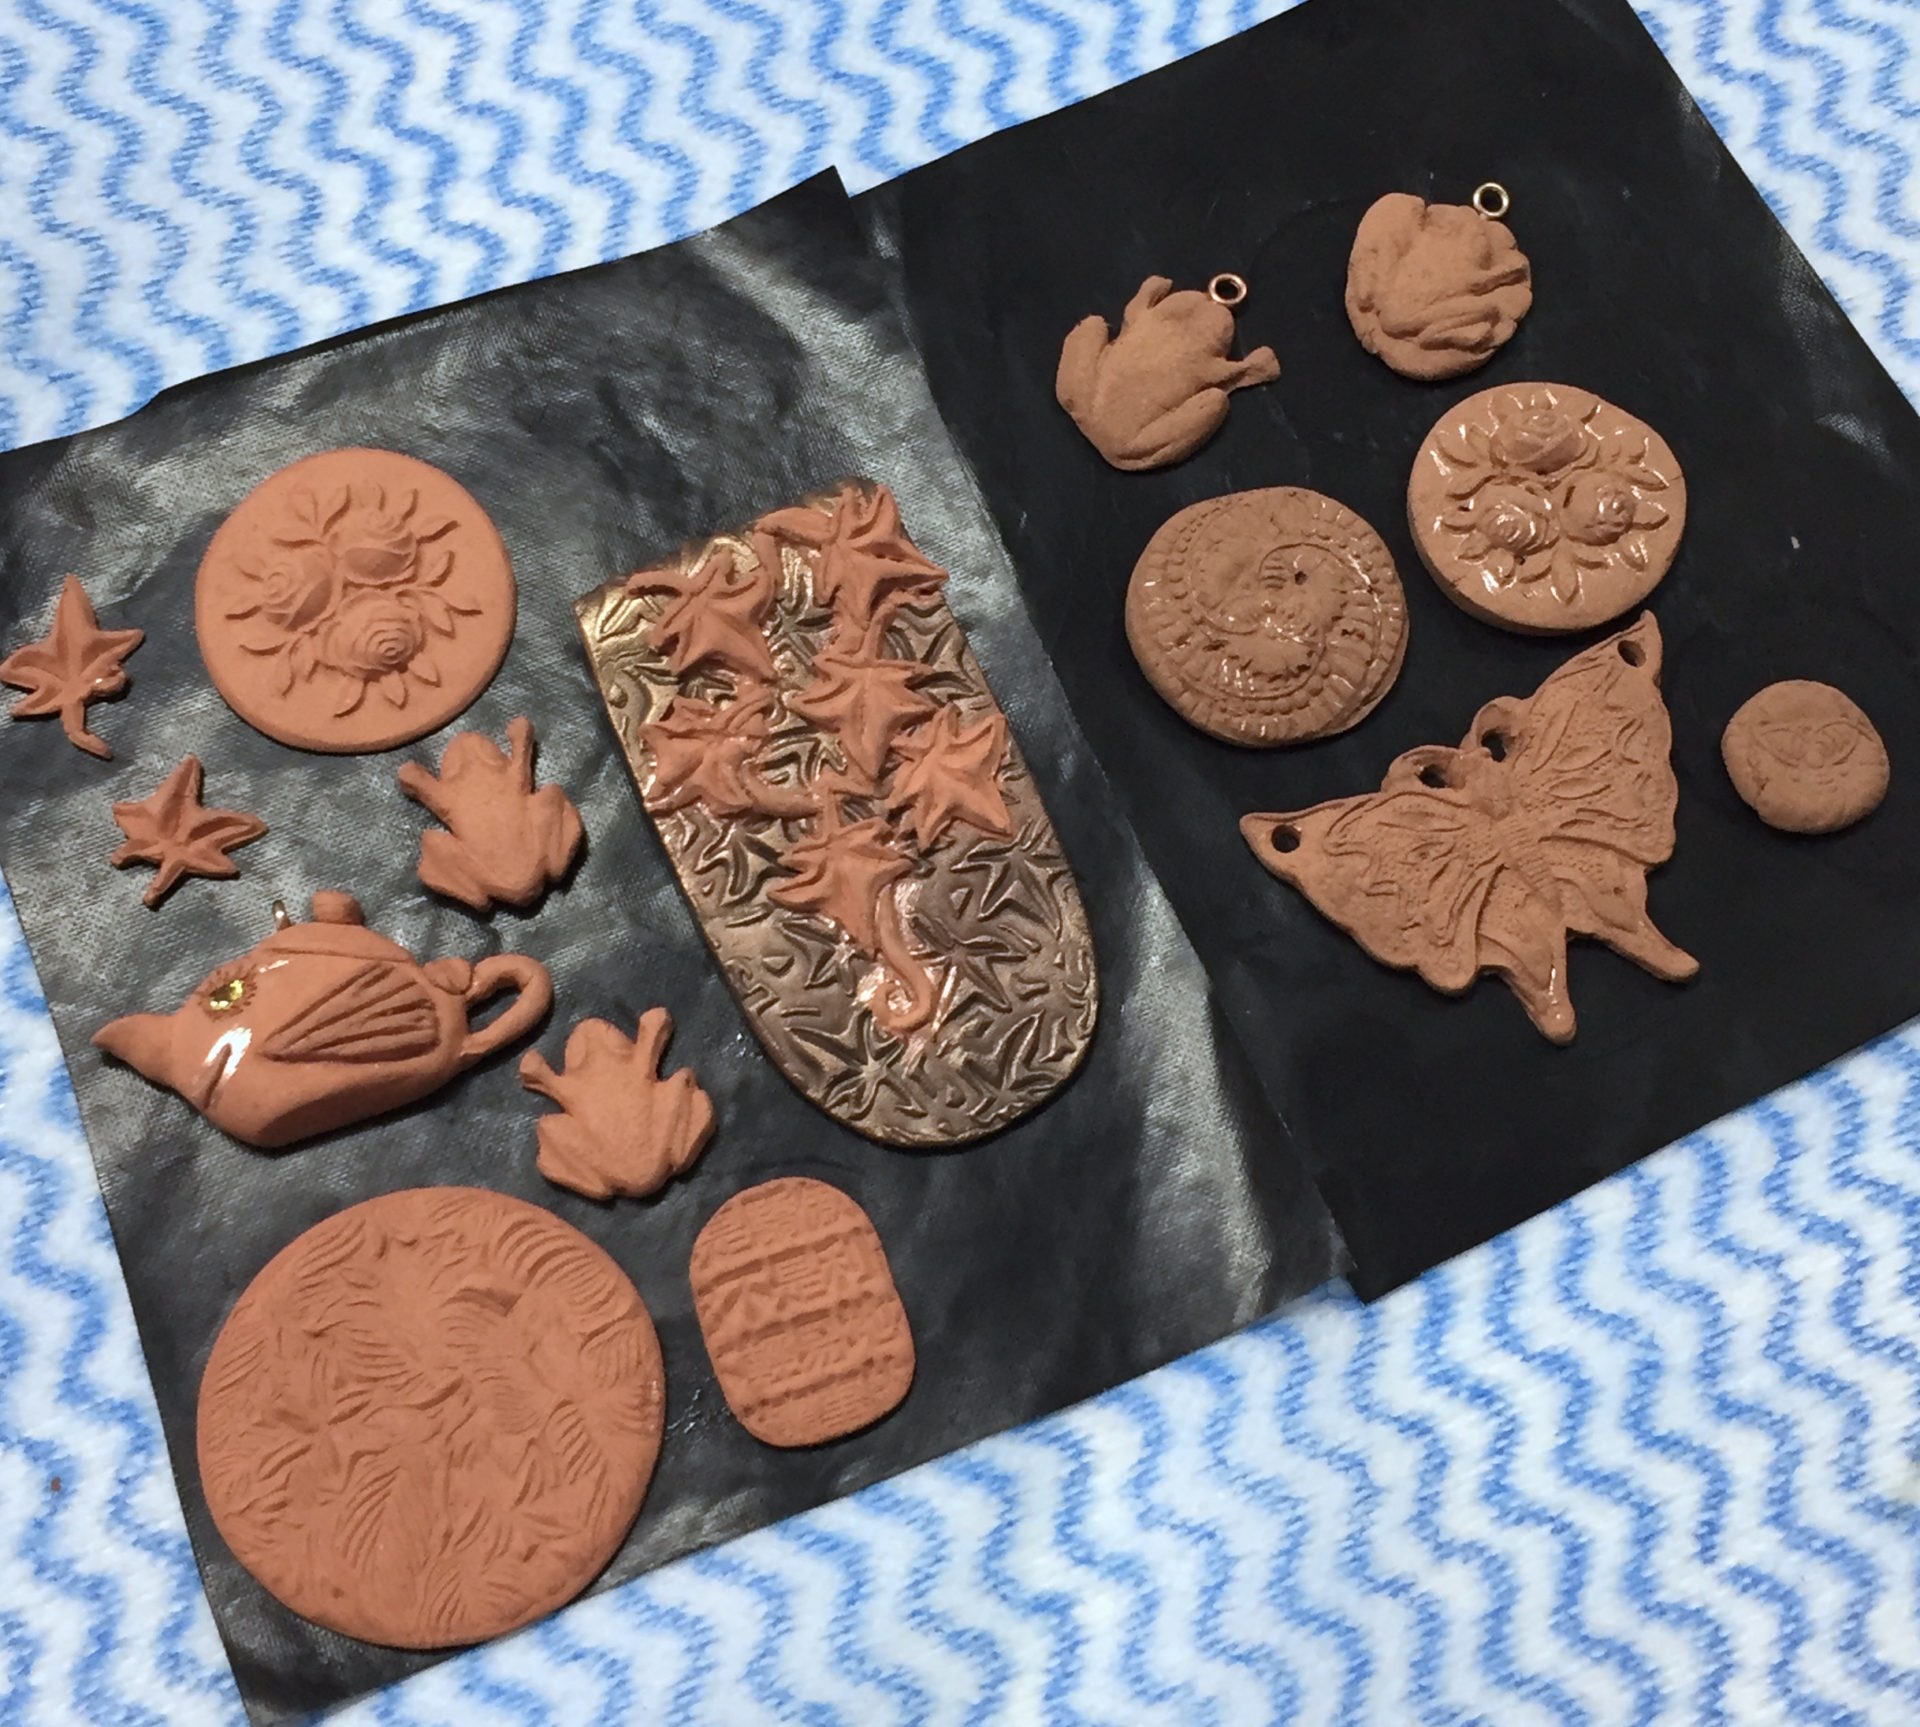 Metal Clay Play_August 2017_5